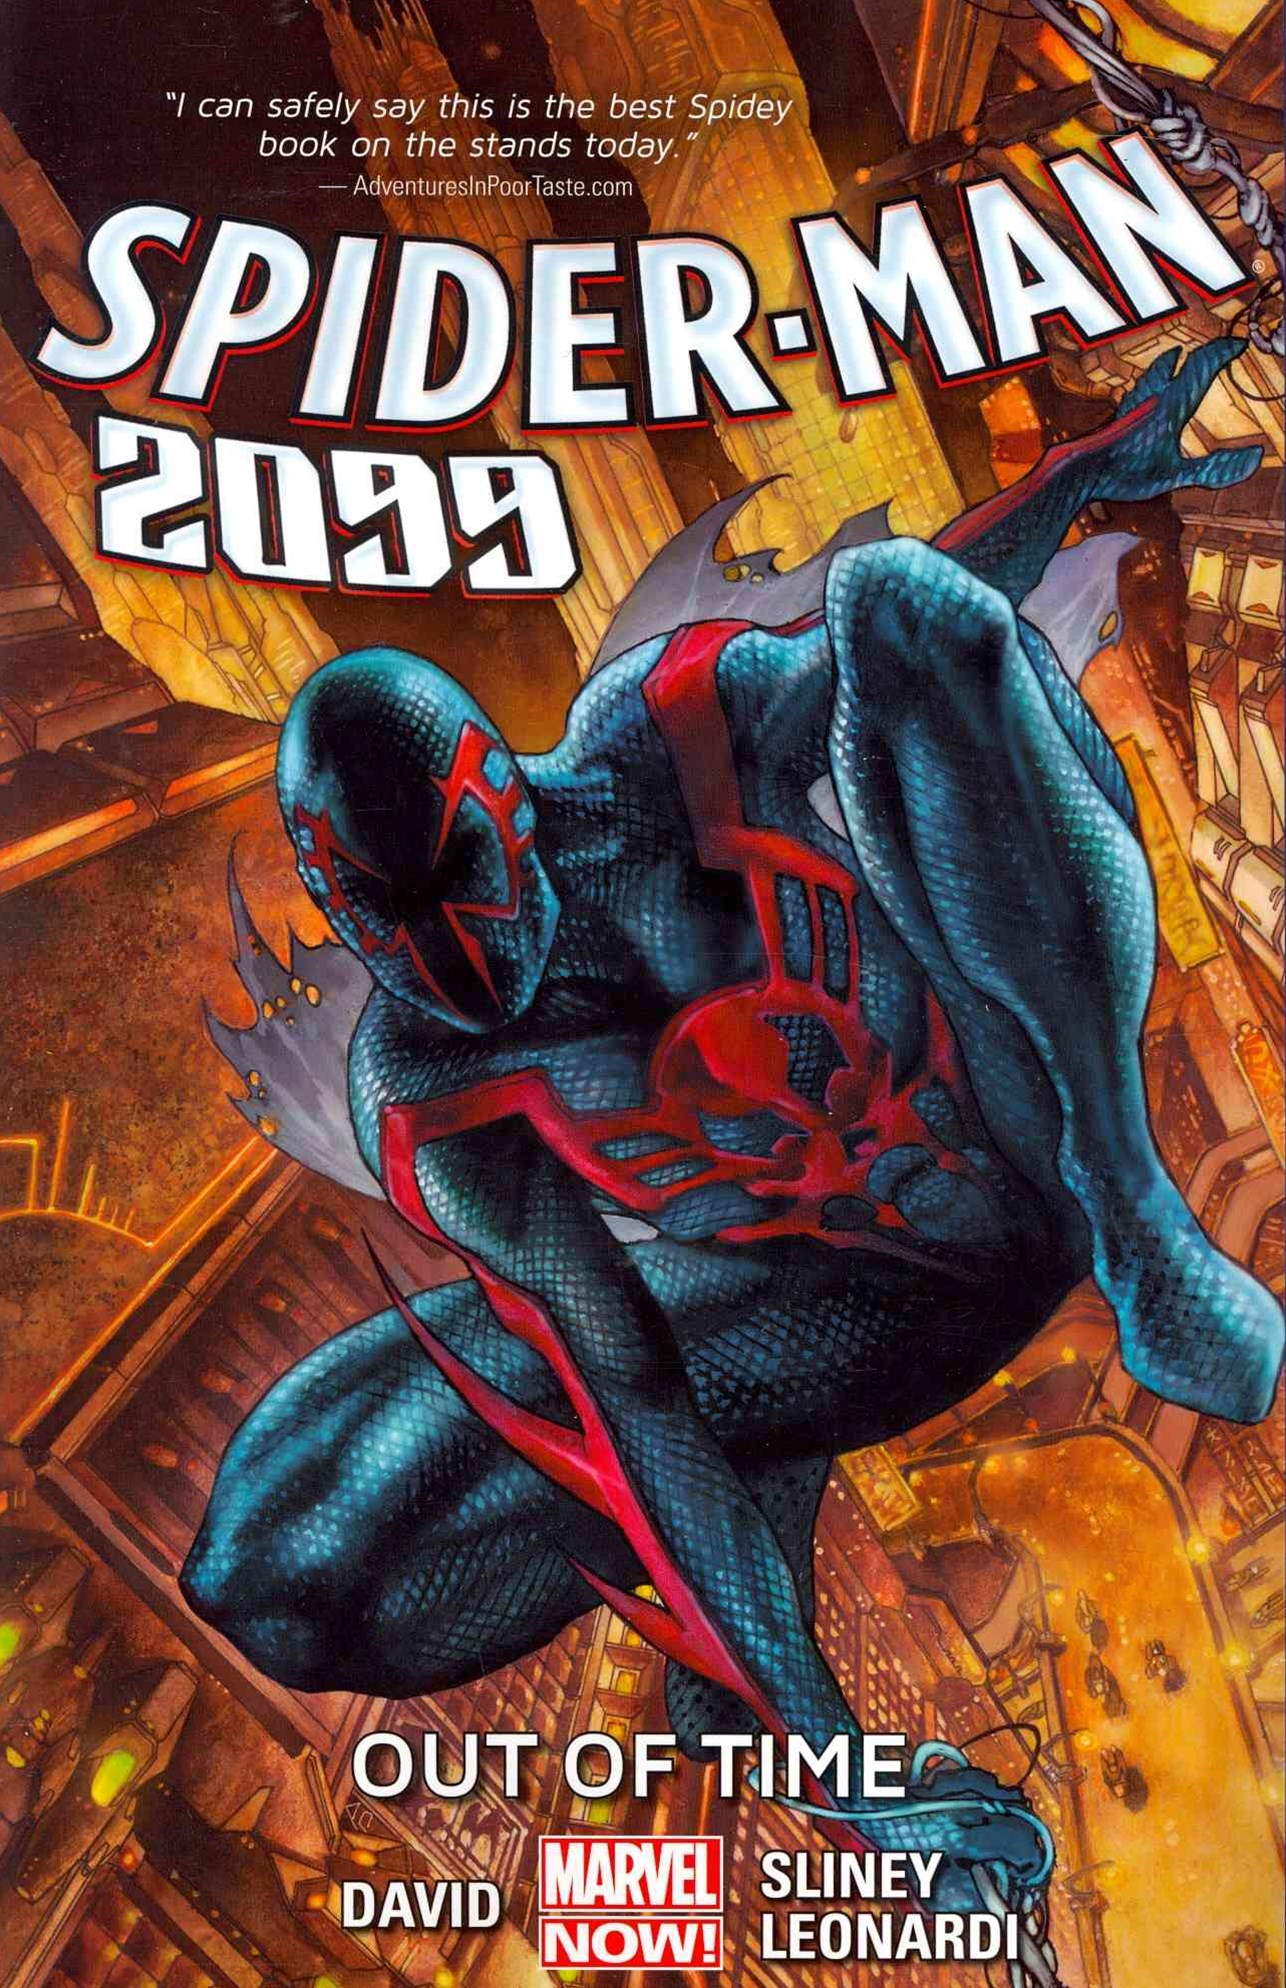 Spider-Man 2099 Volume 1: Out of Time